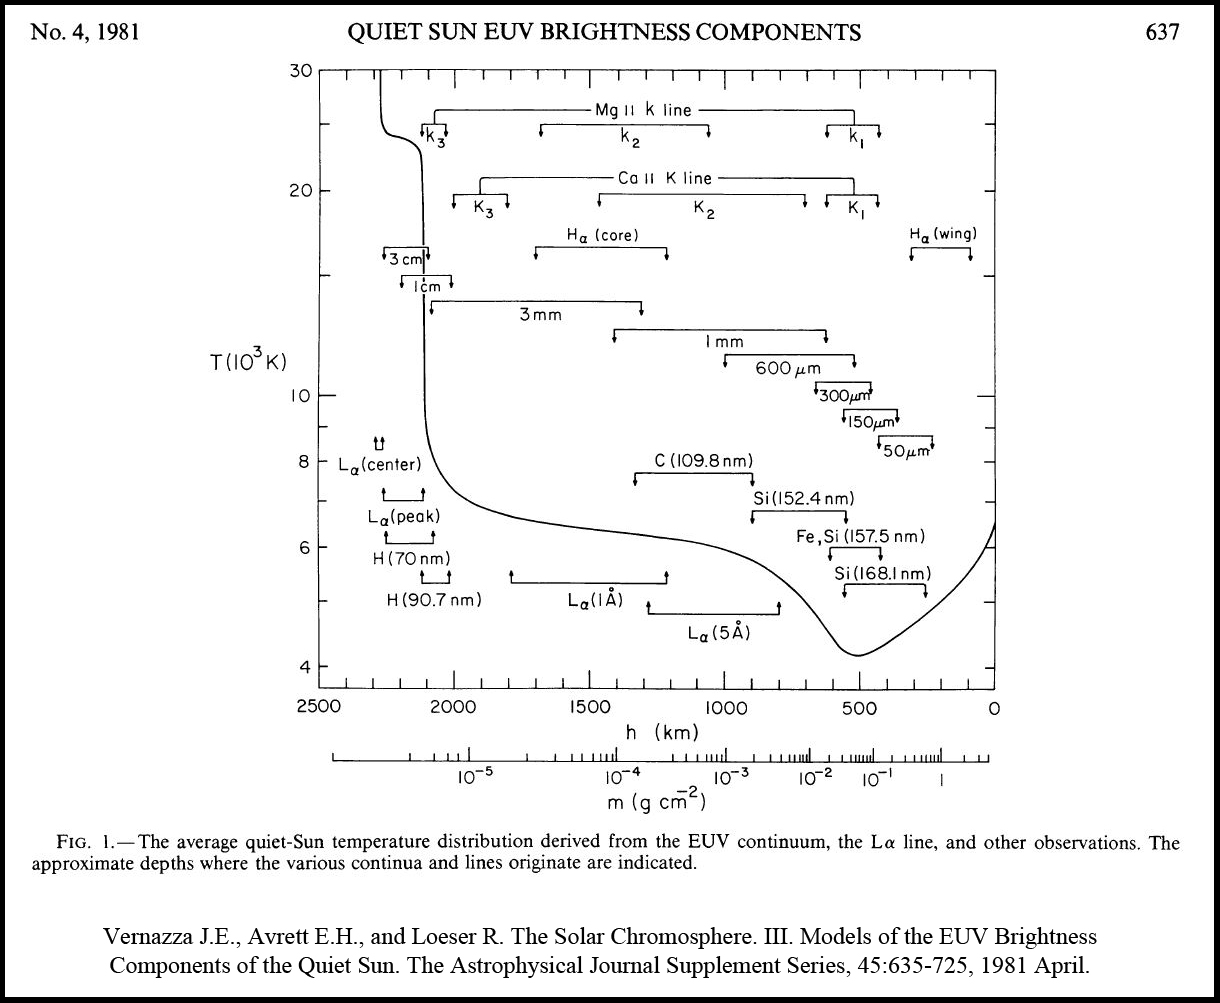 Structure of Chromosphere 1981 Fig 1